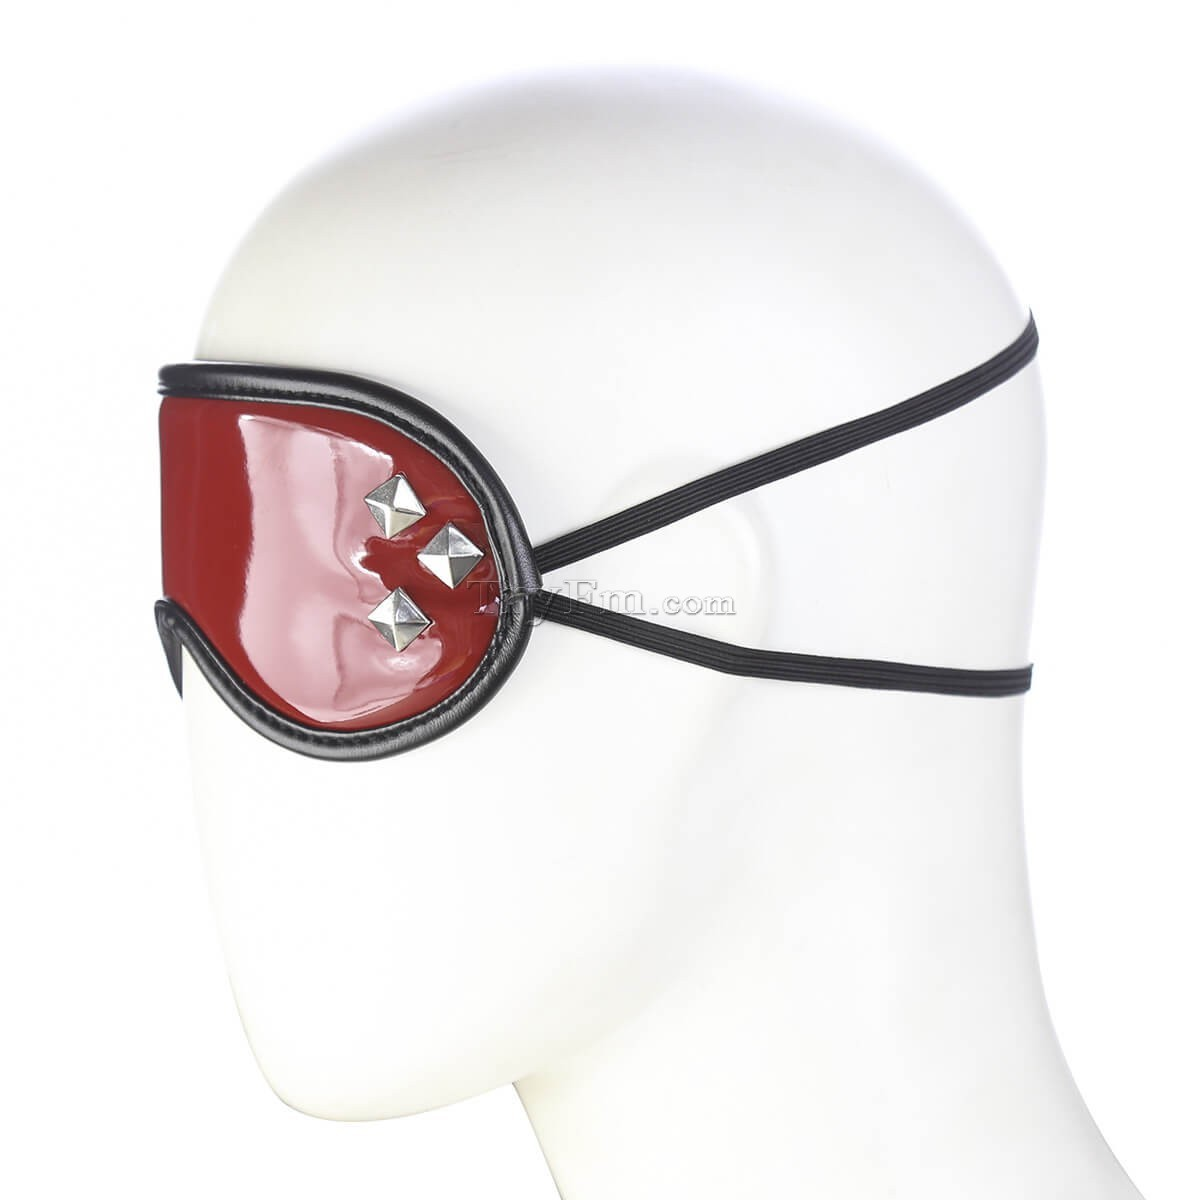 13-dark-red-rivet-blindfold1.jpg